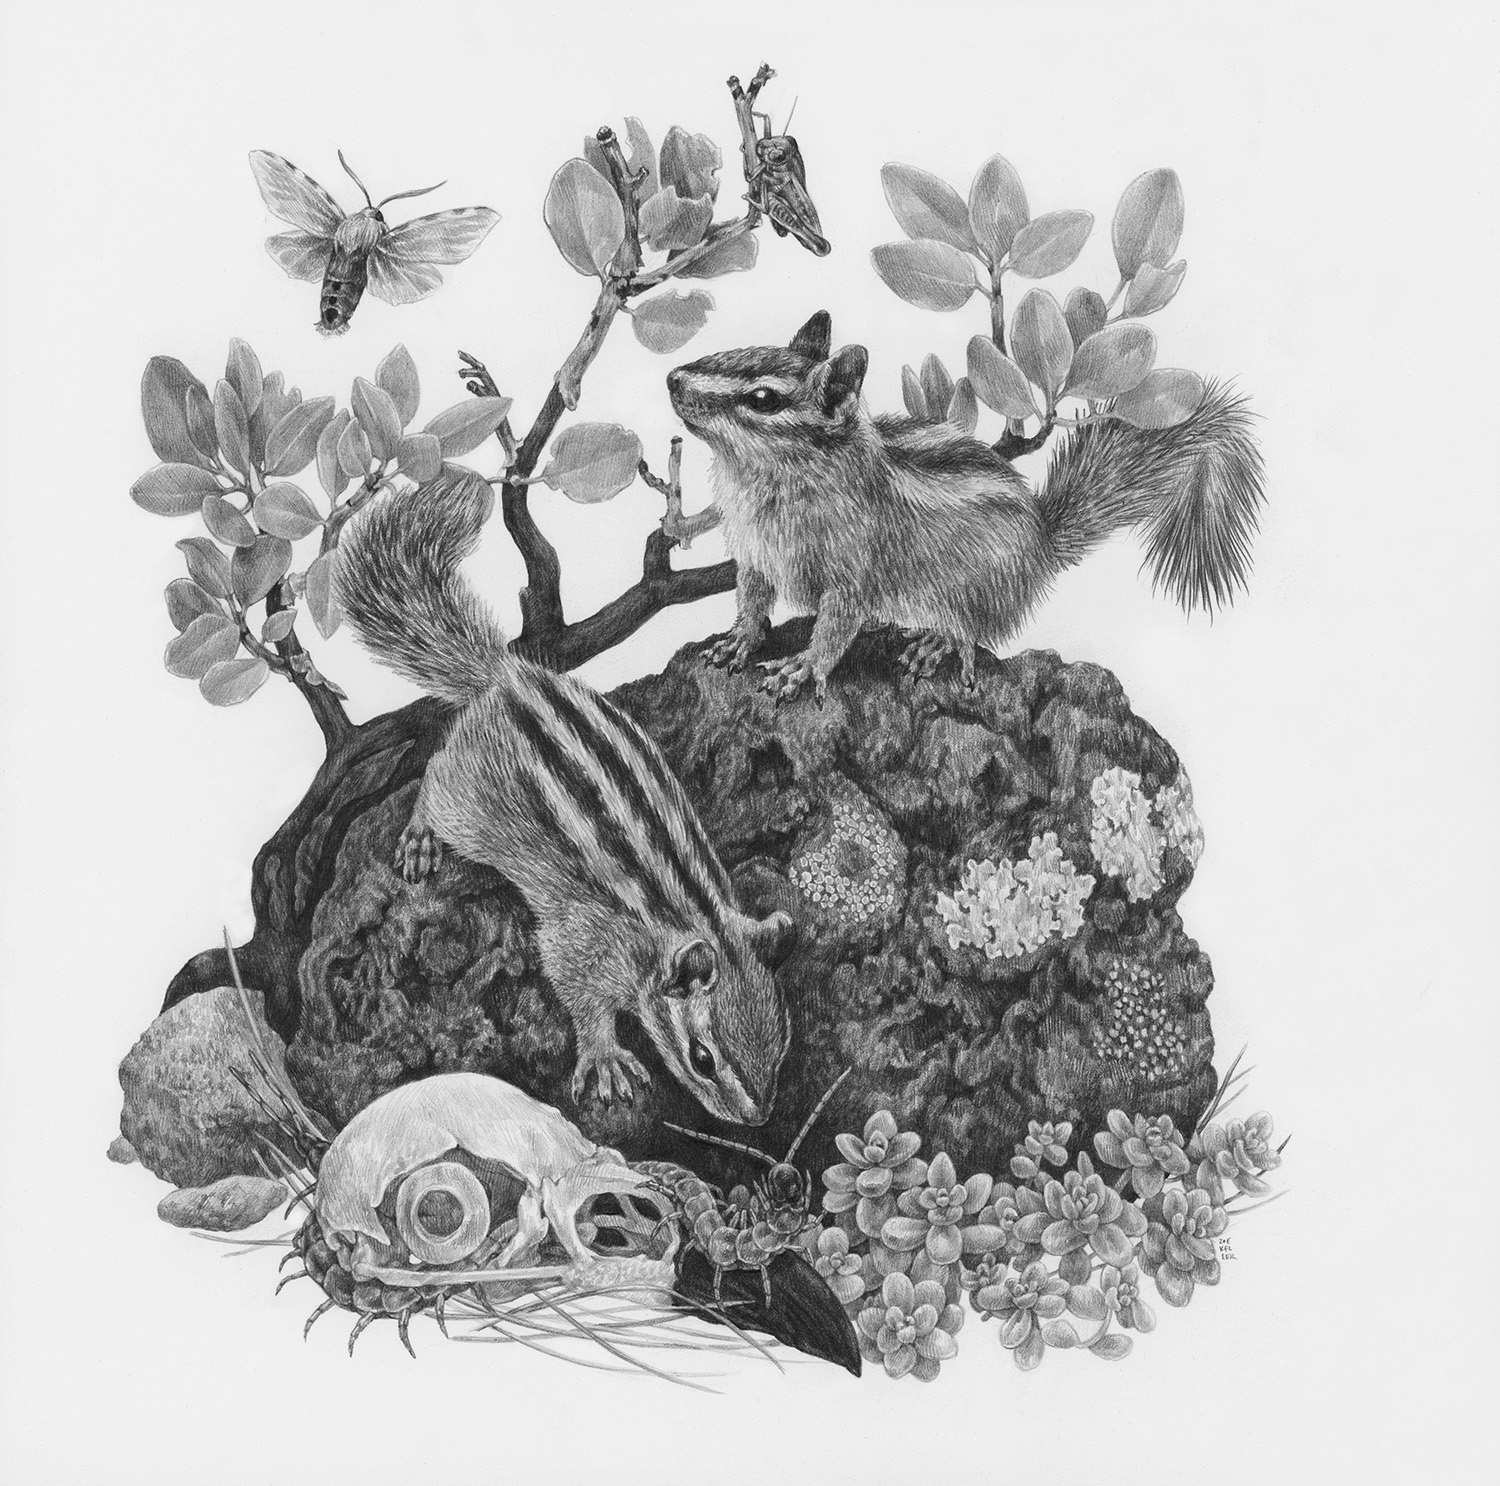 "Angel's Landing, 12"" x 12"", Graphite on paper, 2019  Click here to purchase through Antler Gallery   SPECIES DEPICTED  Cliff Chipmunk, Edward's Glassy-winged Moth, Giant Desert Centipede, Greenleaf Manzanita, observed but unidentified grasshopper and succulent"